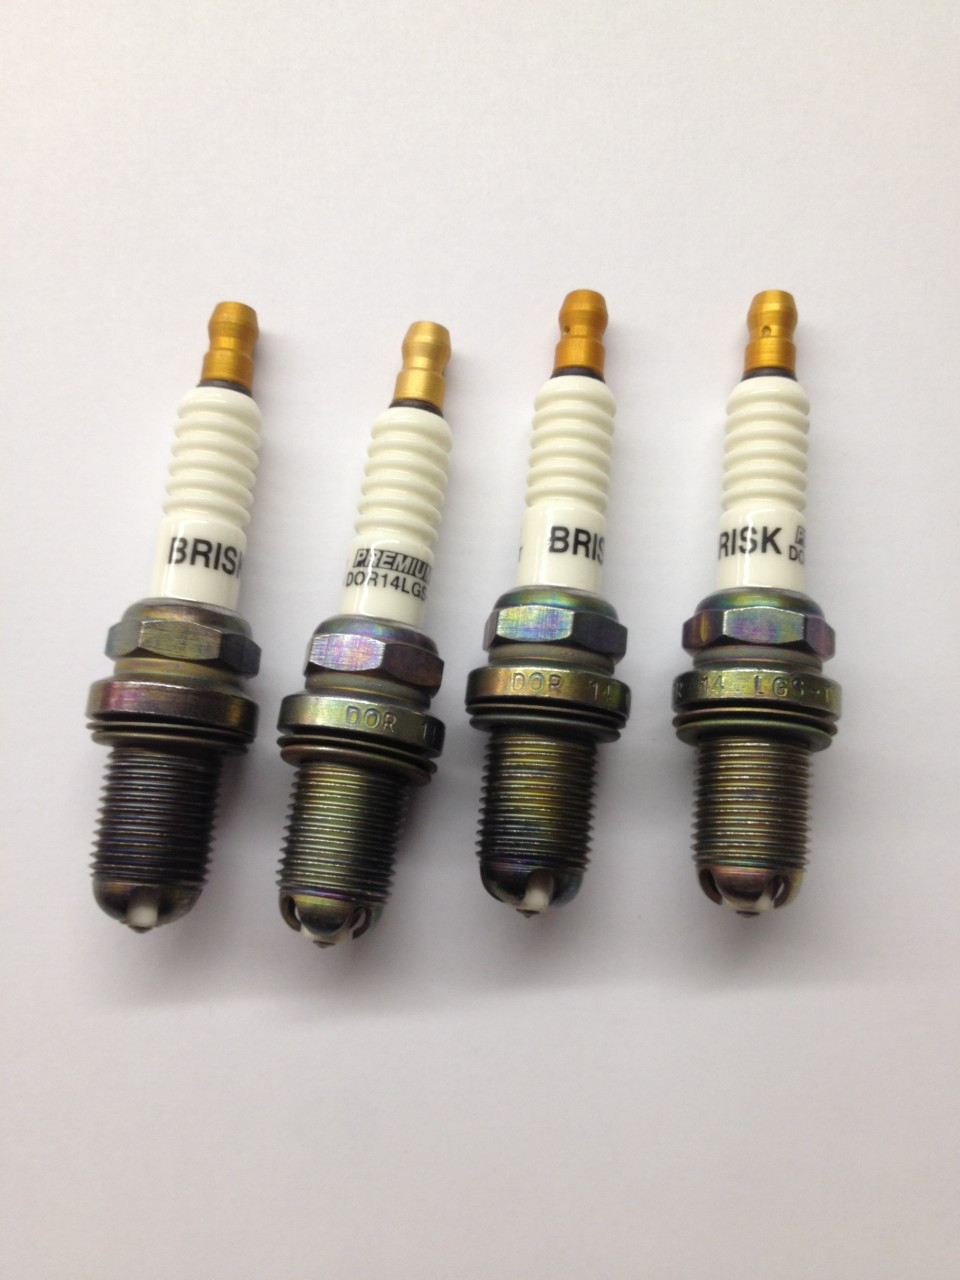 brisk spark plugs for mini cooper s